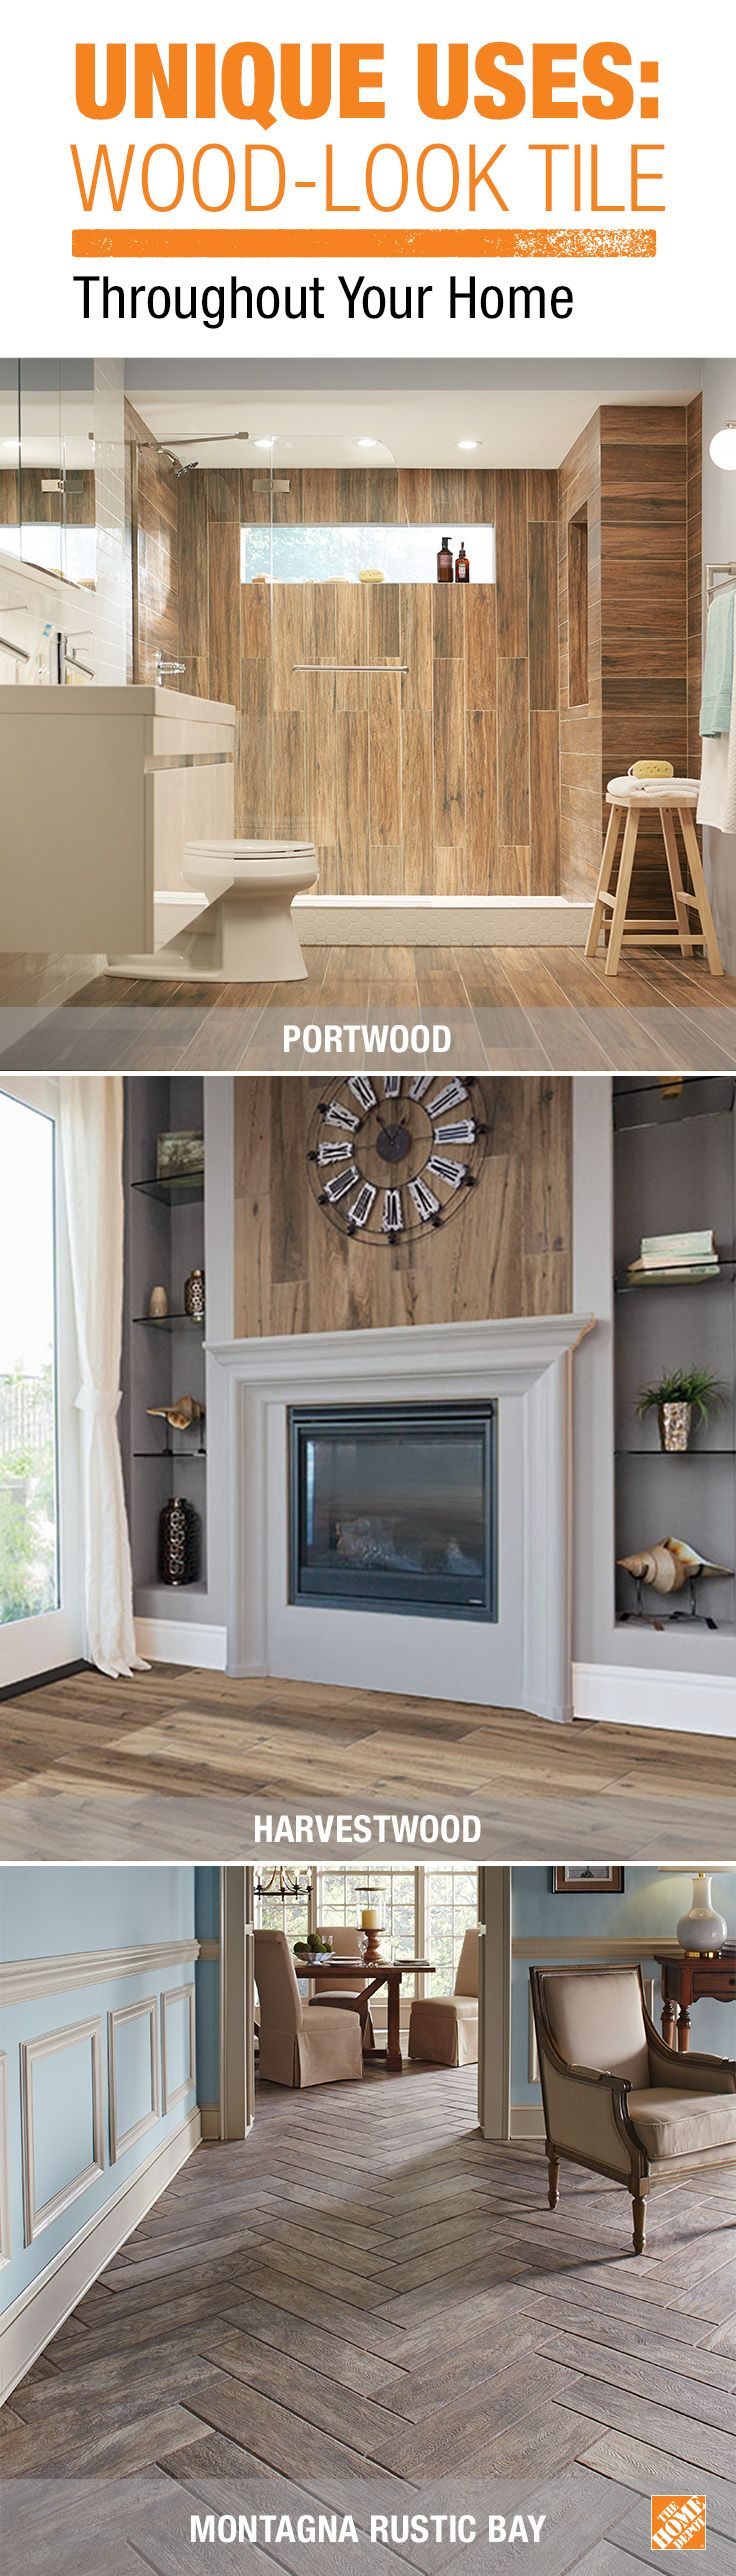 Get the look of natural wood but with the advantages of porcelain